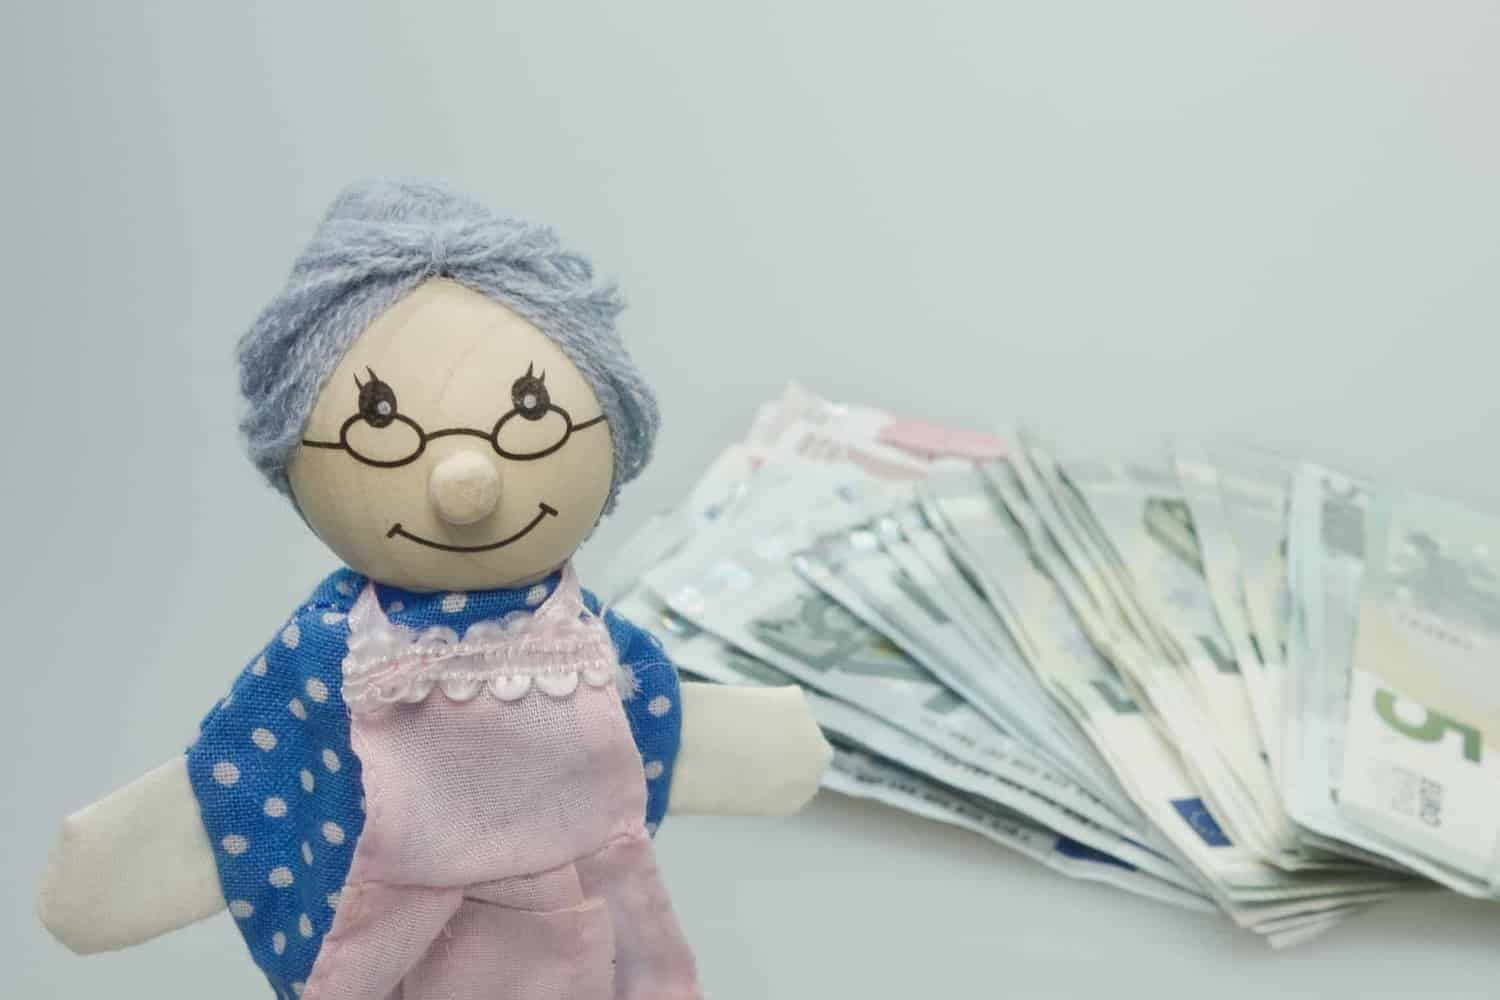 Doll of grandmother next to pile of money